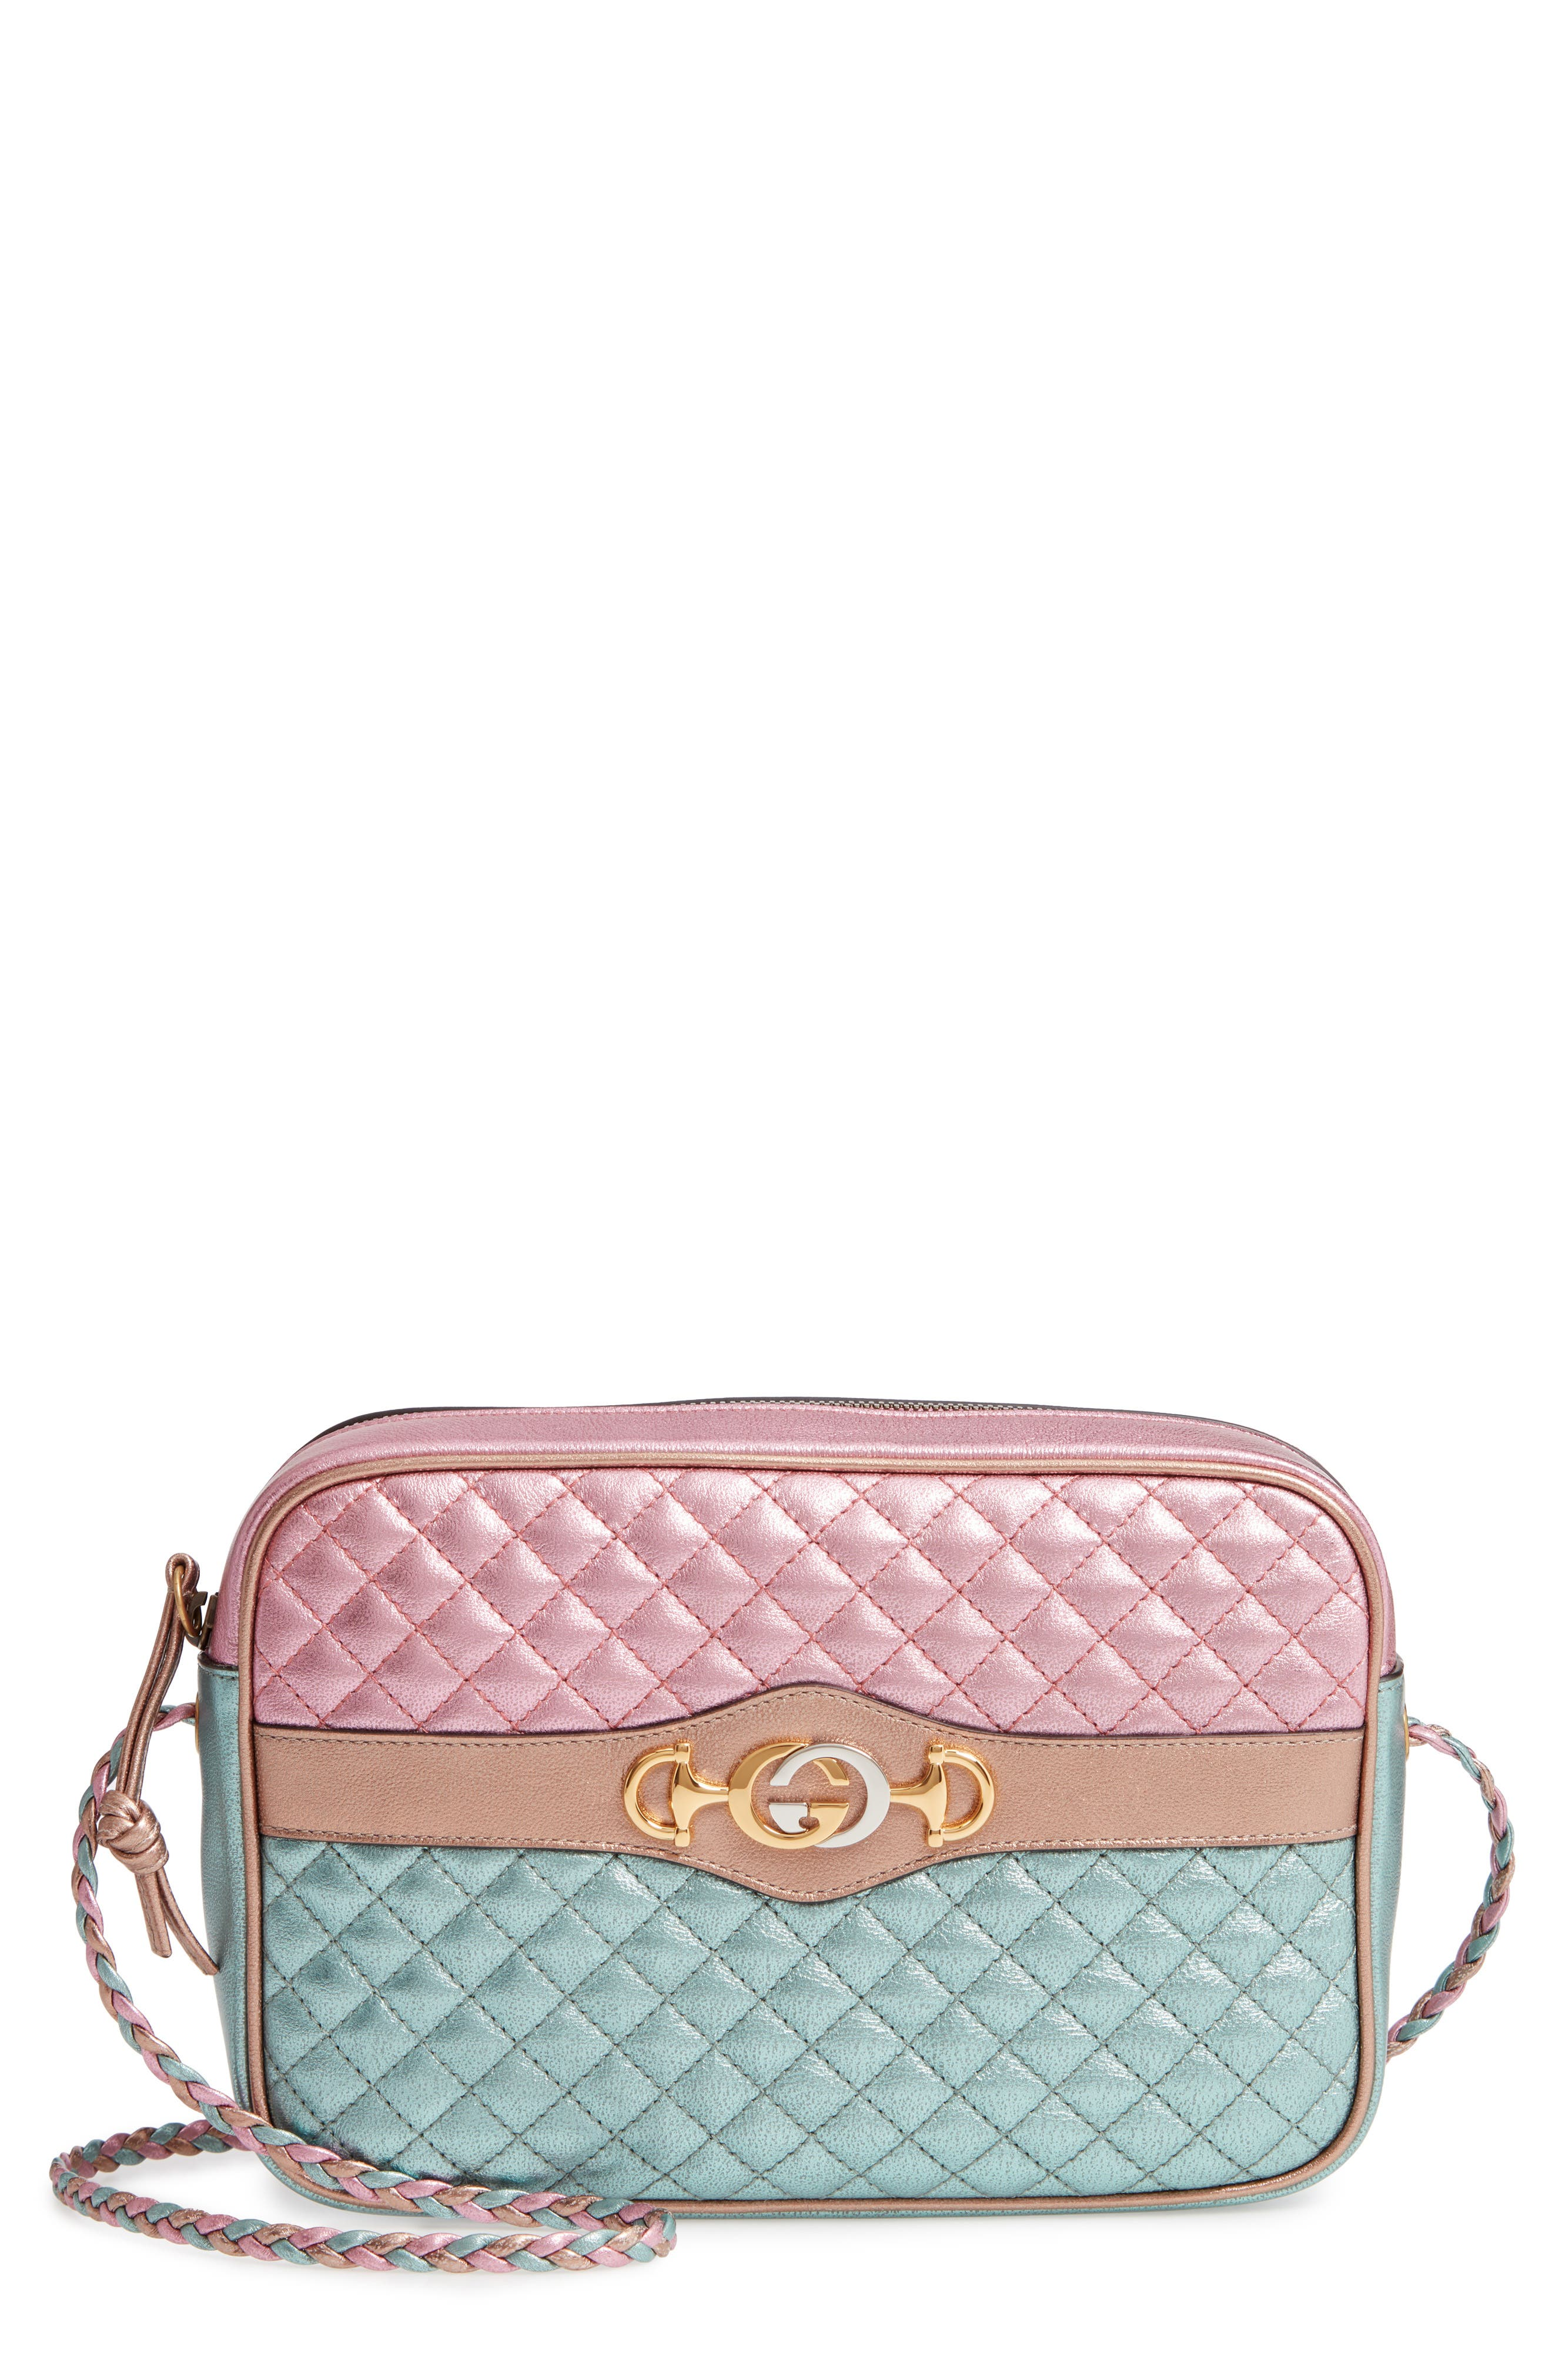 GUCCI Small Quilted Metallic Leather Shoulder Bag, Main, color, ROSE/ BLUE